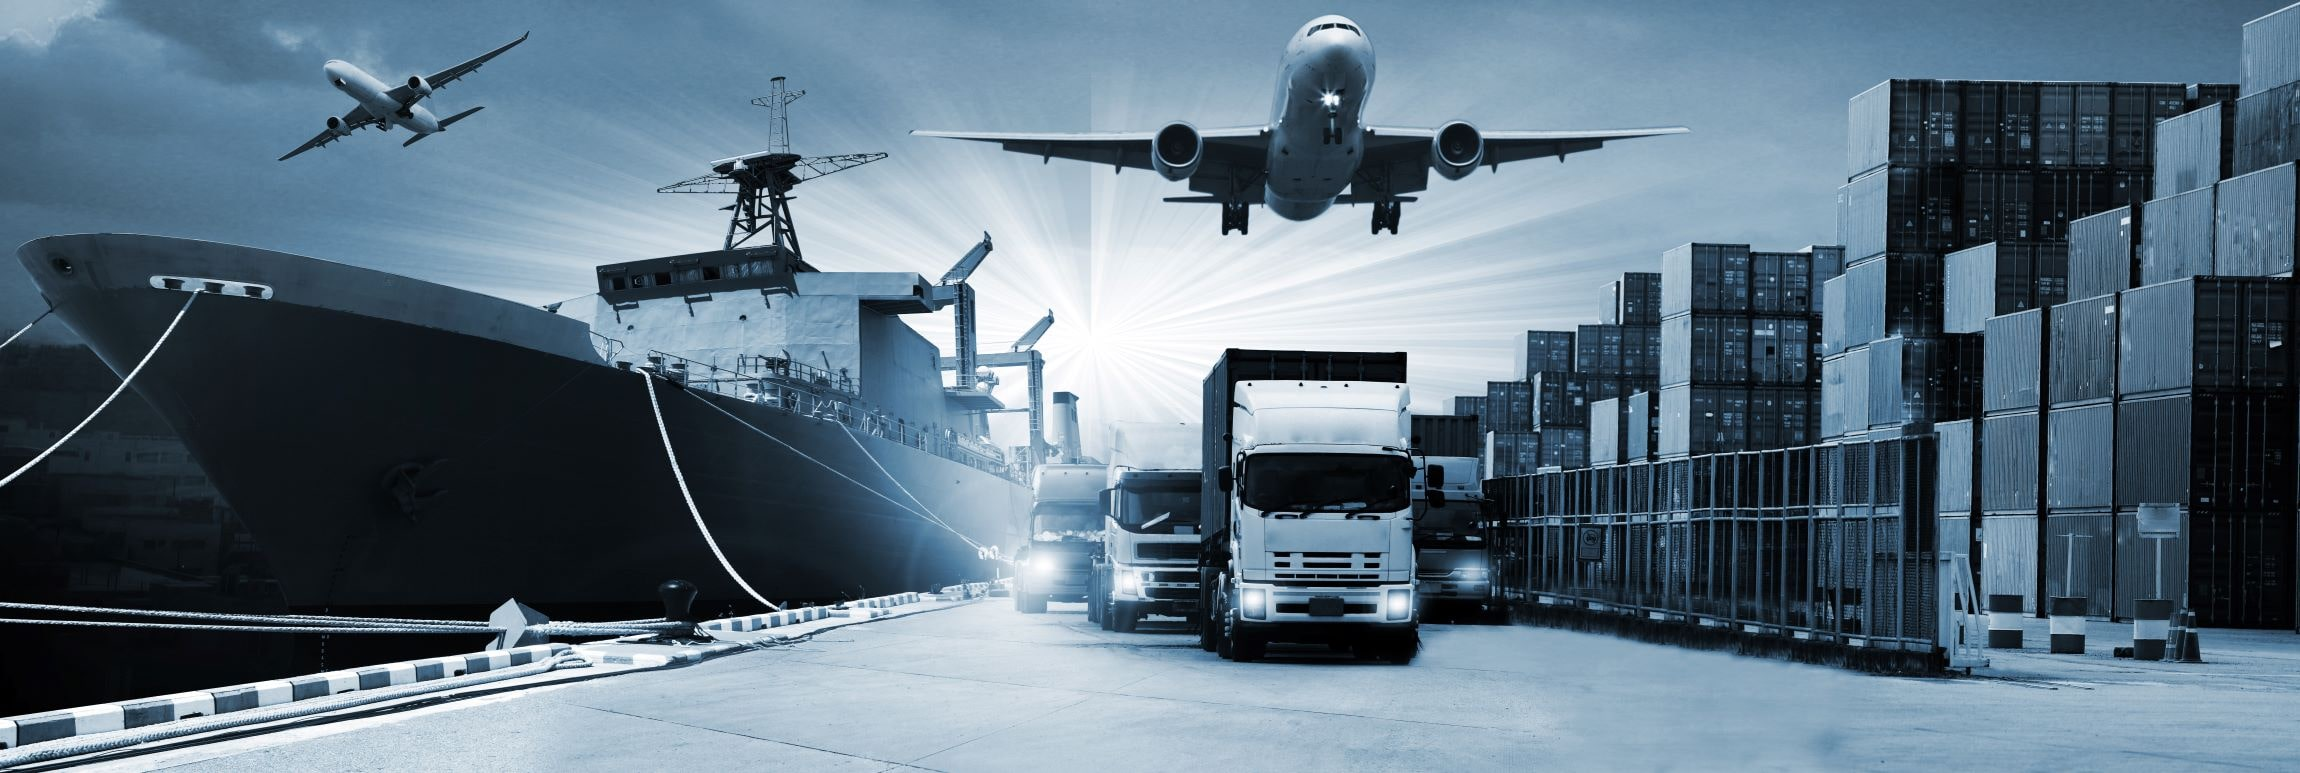 Adapting to the collapse of the aircraft parts logistics supply chain